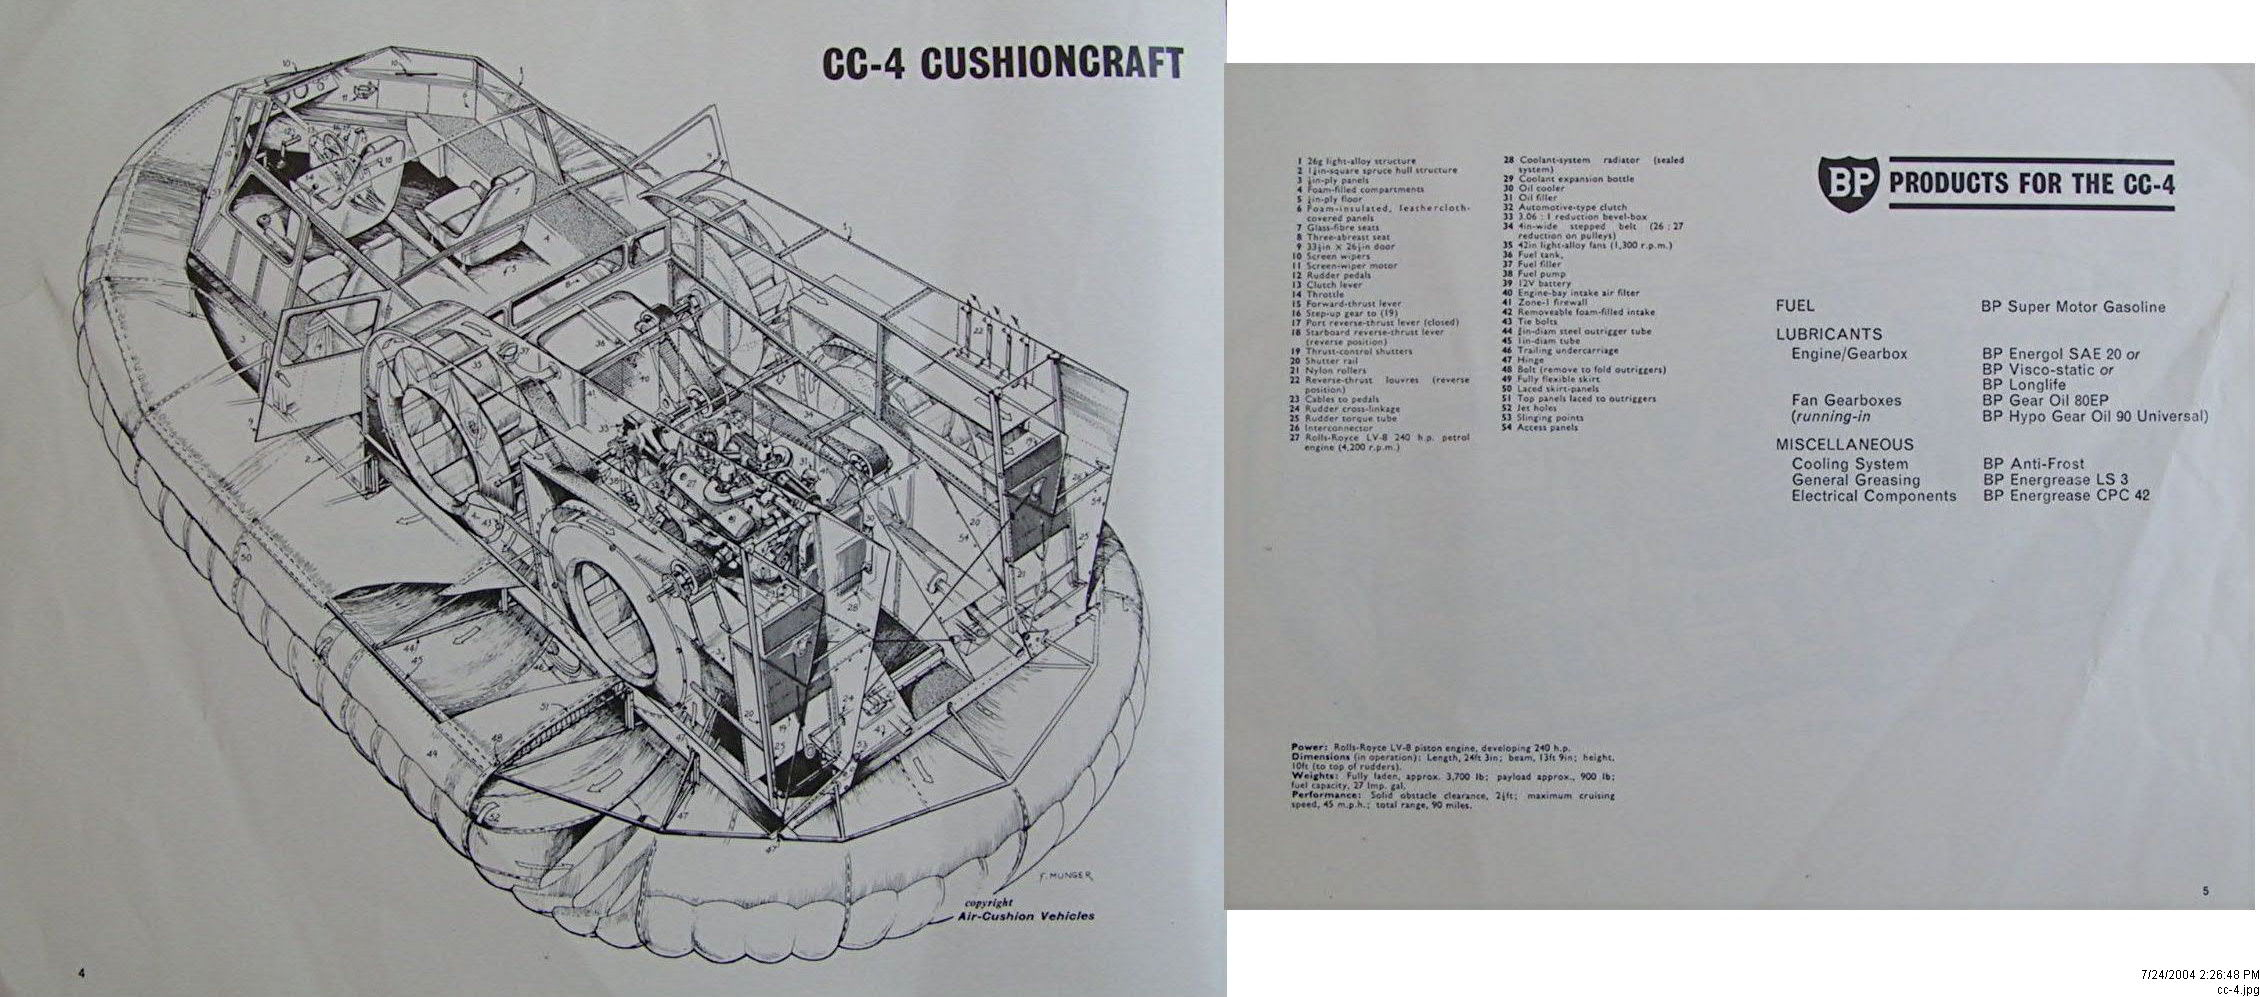 Hovercraft plans and catalogs 4wings hovercraft development cc 4 cushioncraft solutioingenieria Image collections